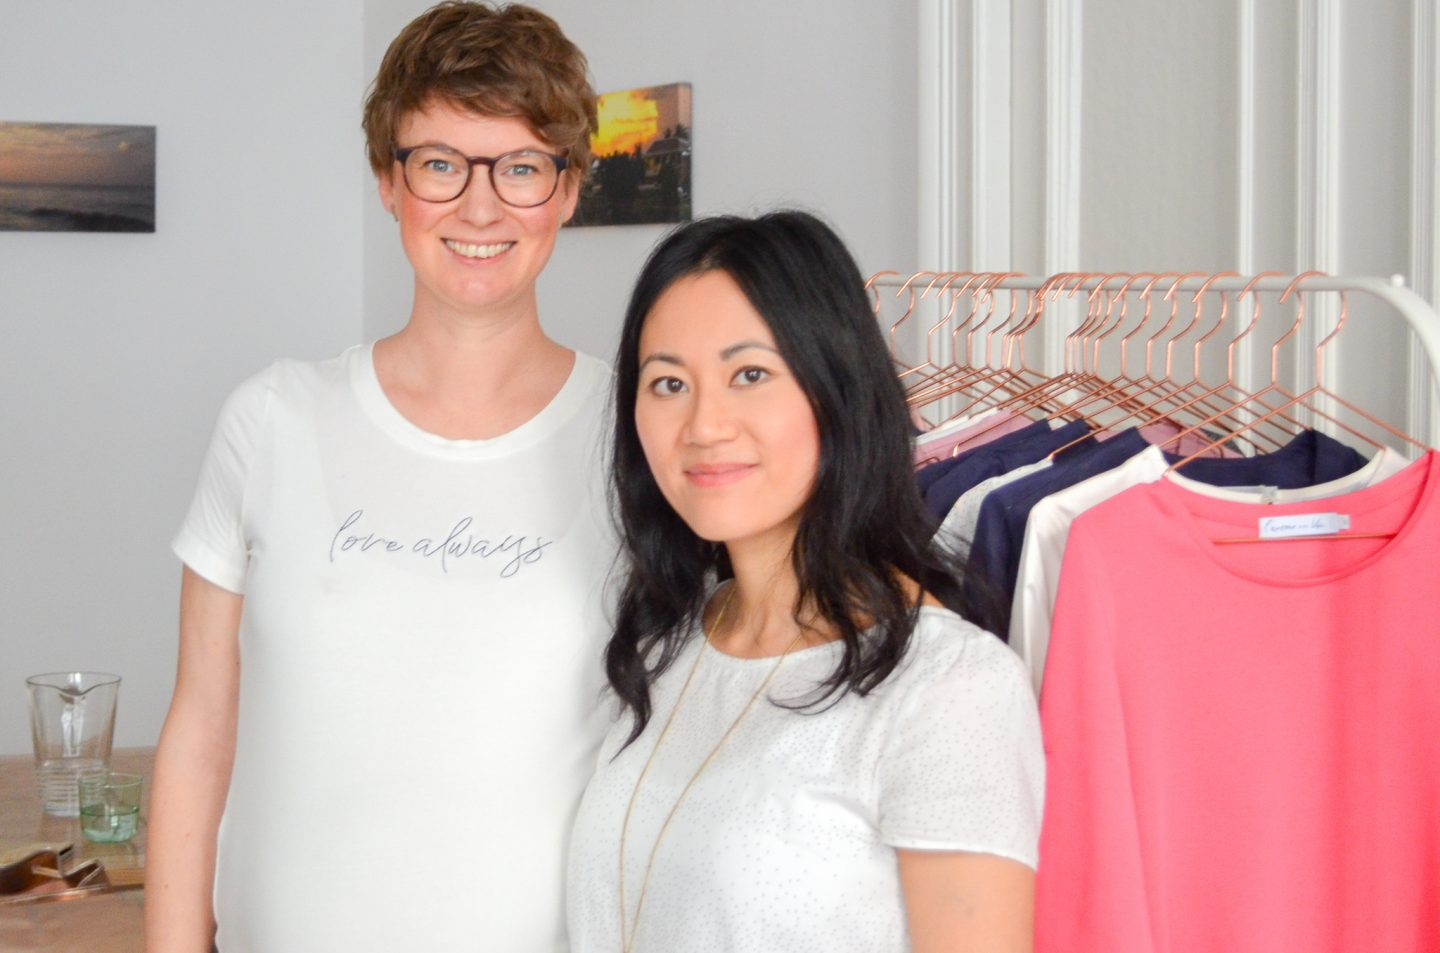 Interview on Fair Fashion and Sustainability with L'amour est Bleu